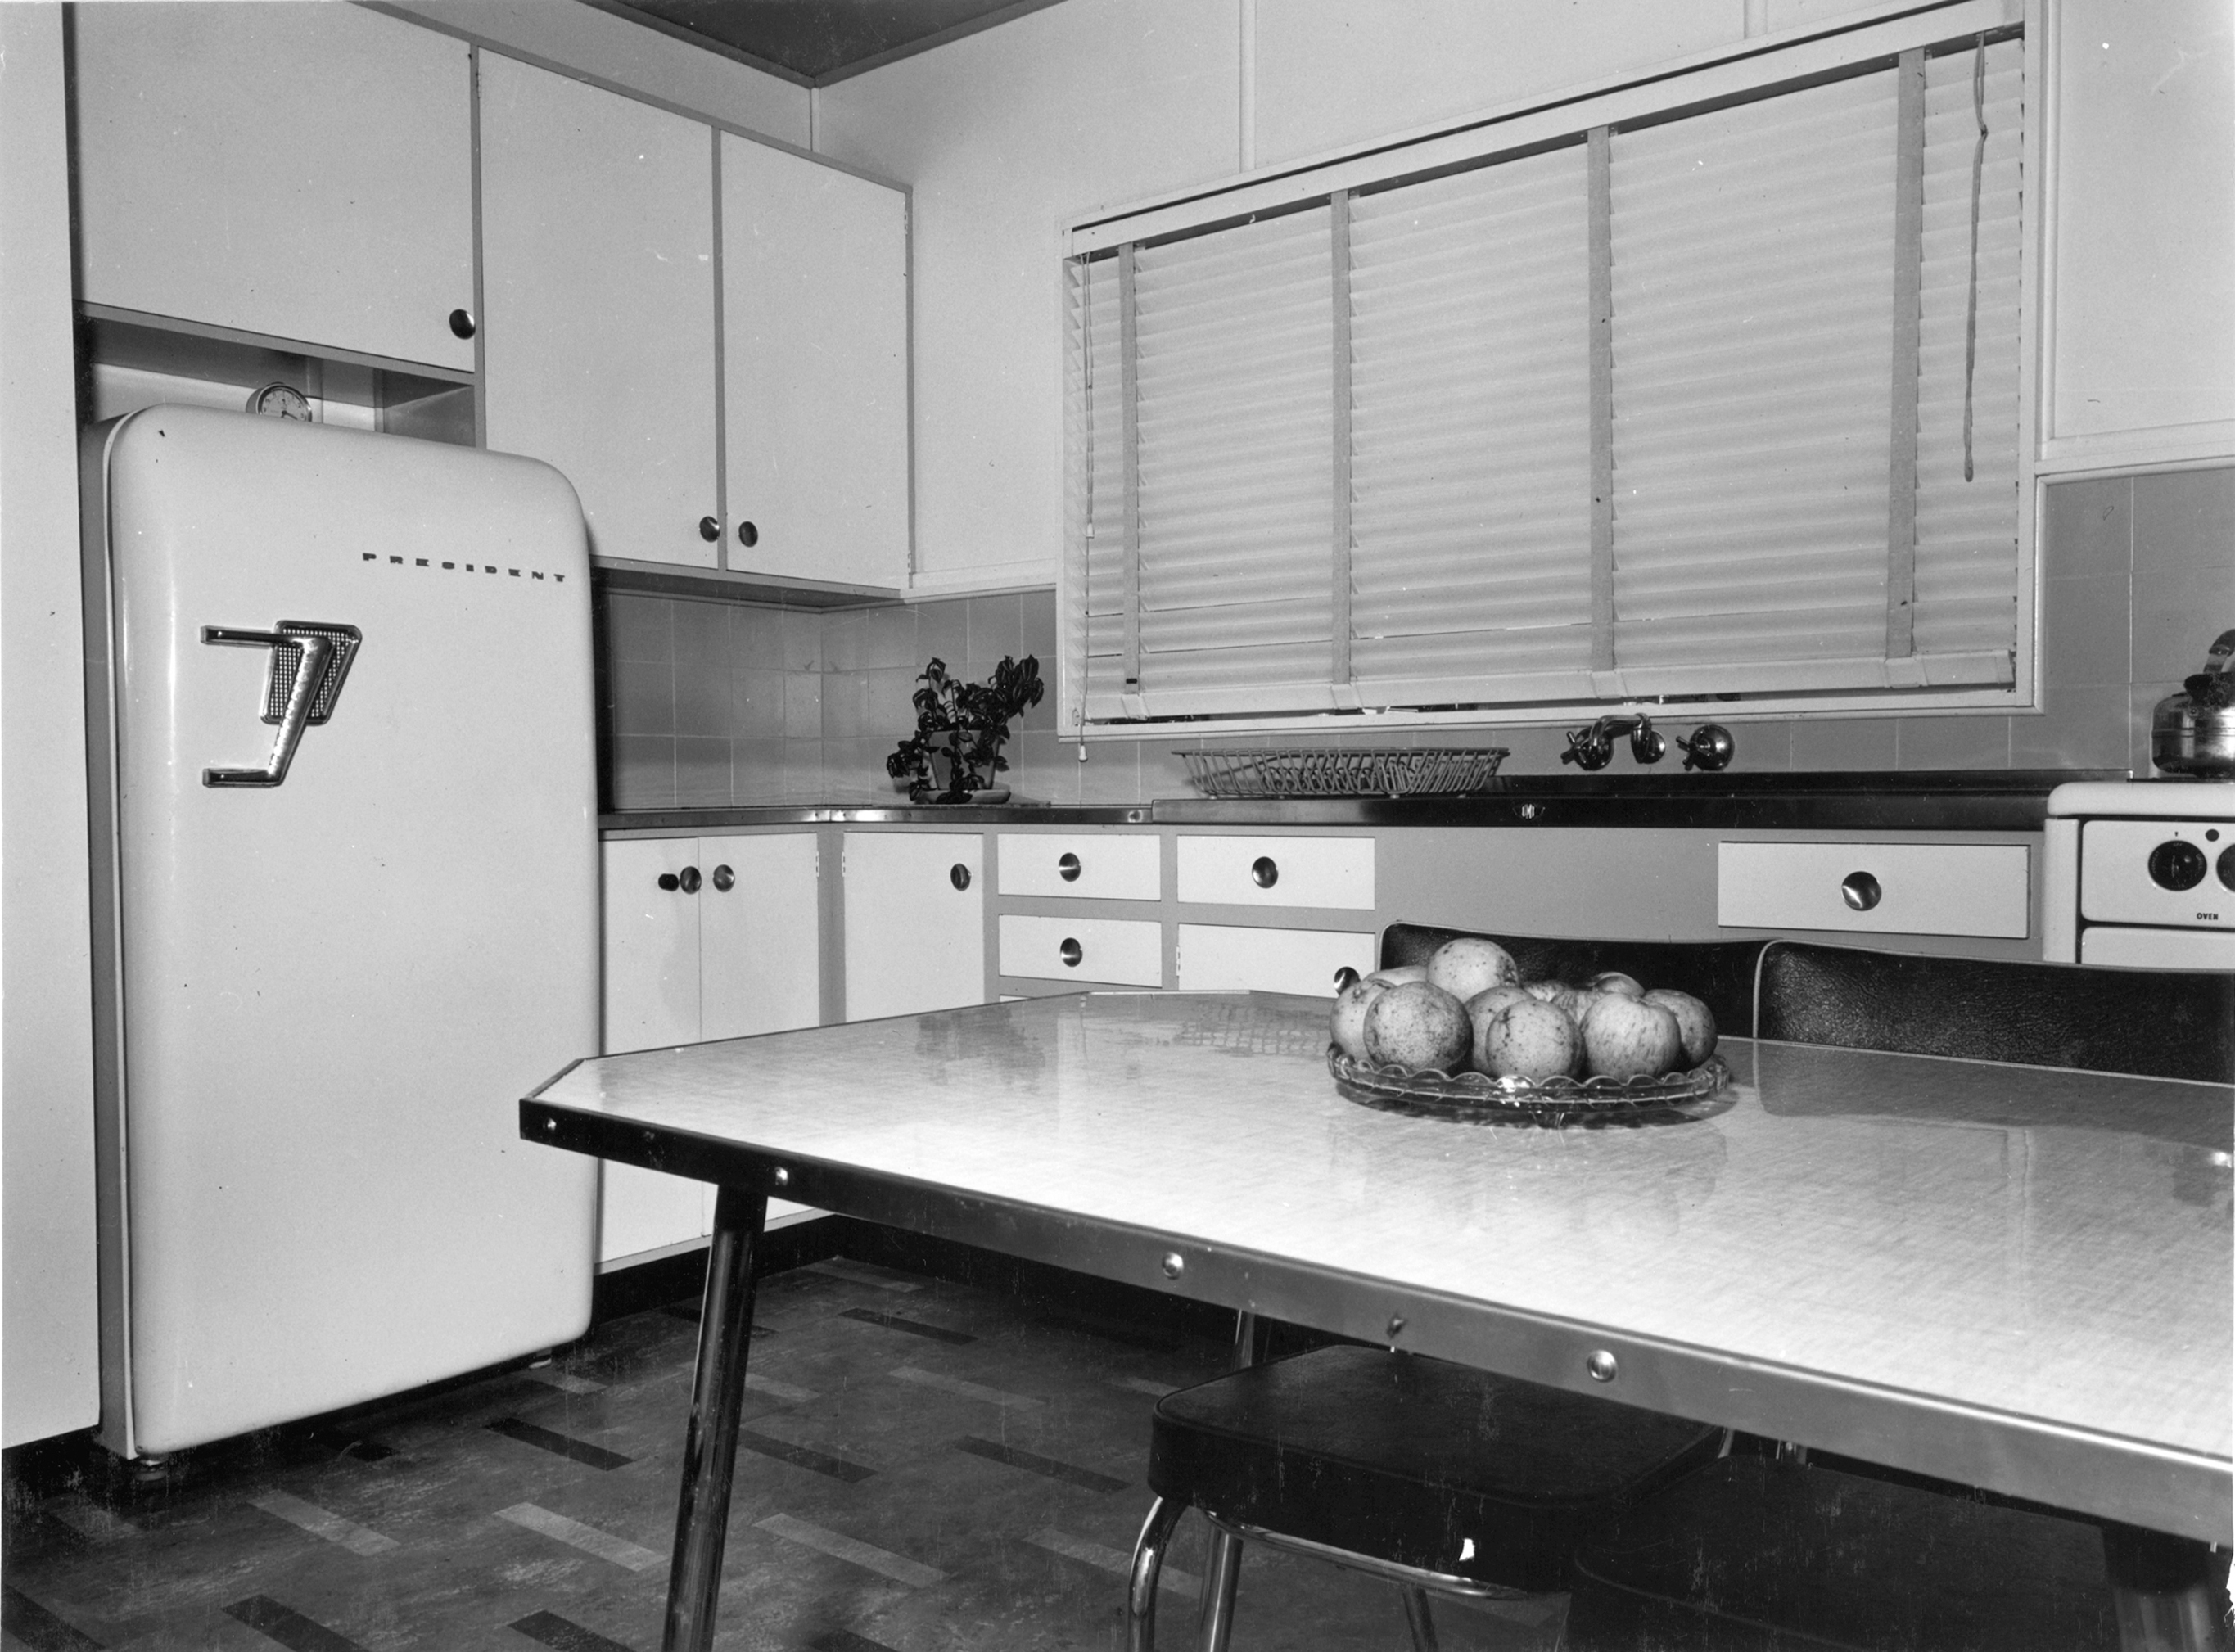 black and white image of old kitchen